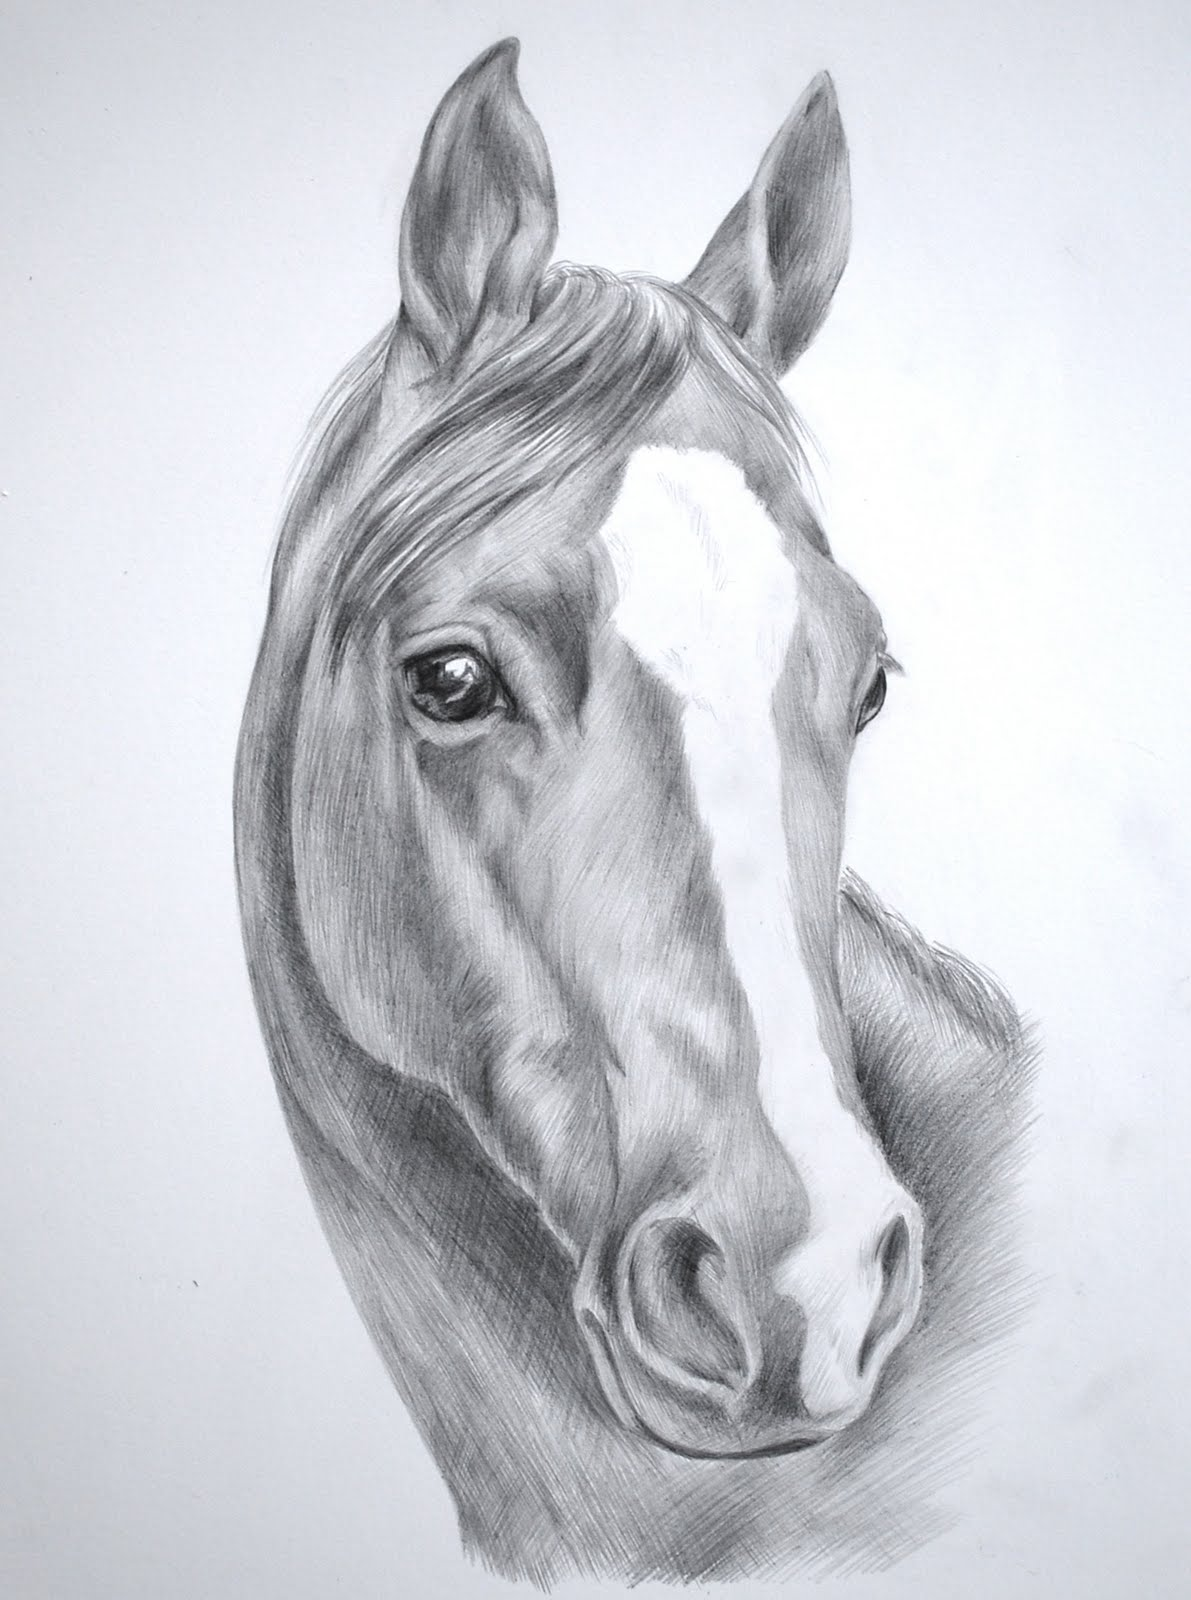 Black horse head drawing - photo#2